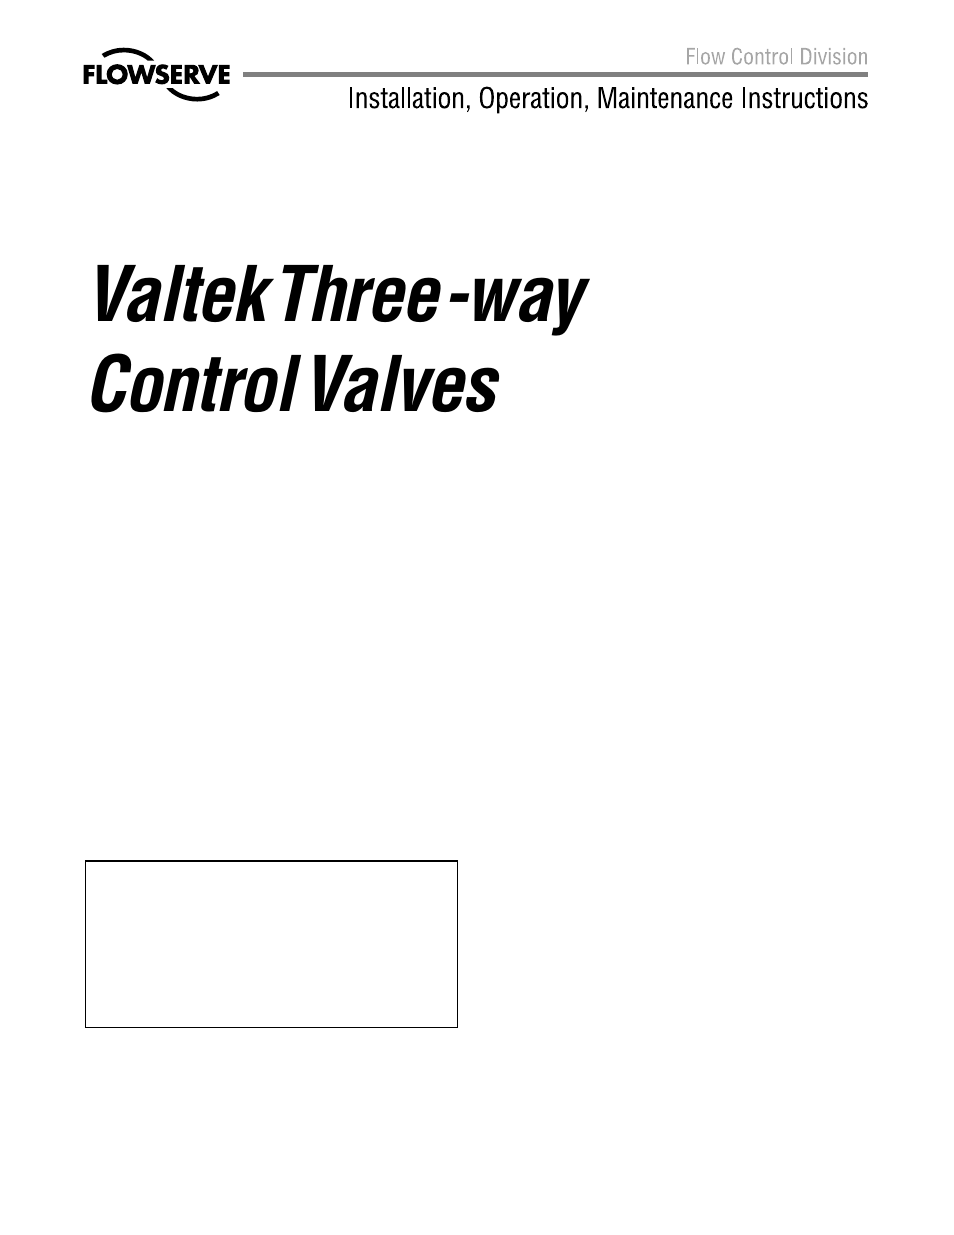 Flowserve valtek mark one and mark two control valves user manual.